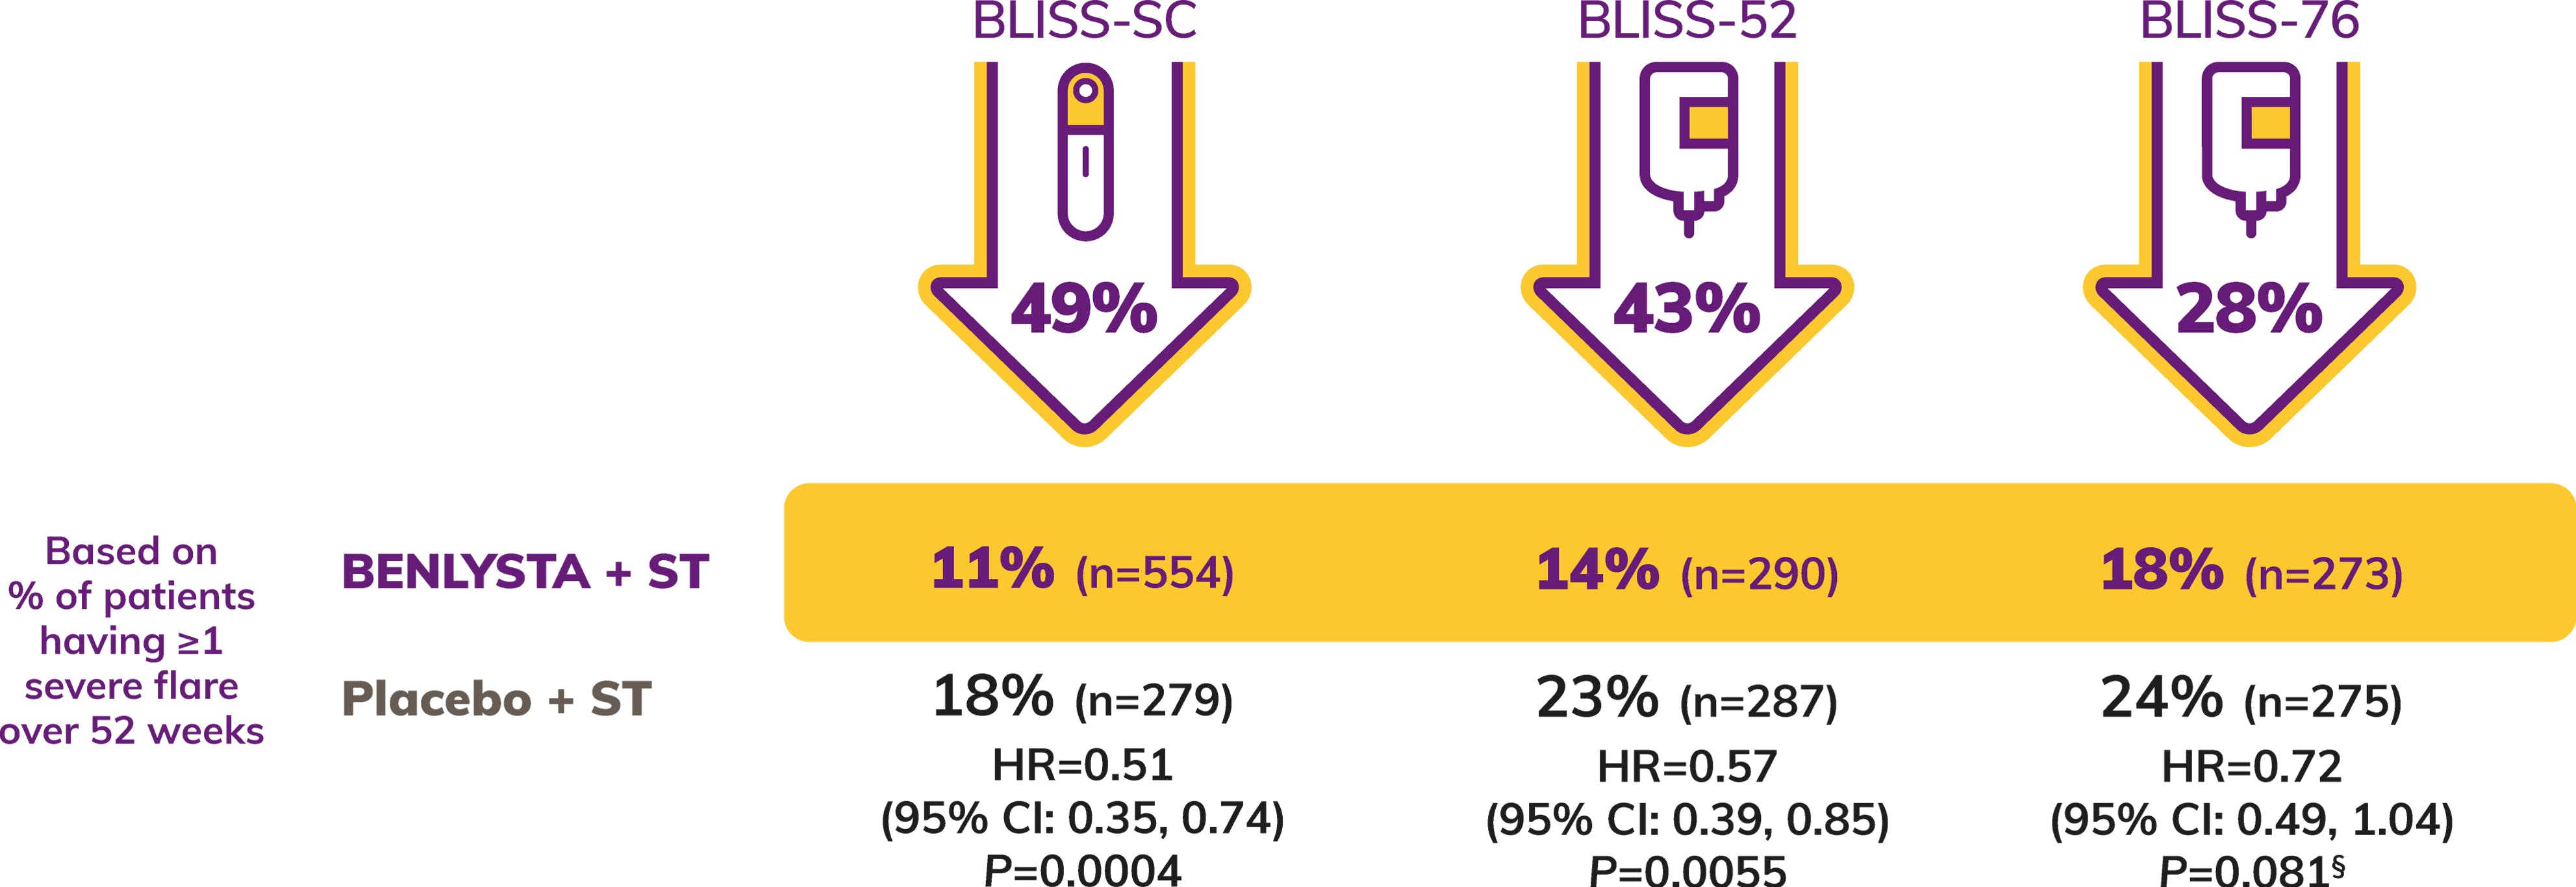 Icon: Reduction in Severe Flares Shows 49% for Bliss SC, 43% for Bliss 52, 28% for Bliss 76